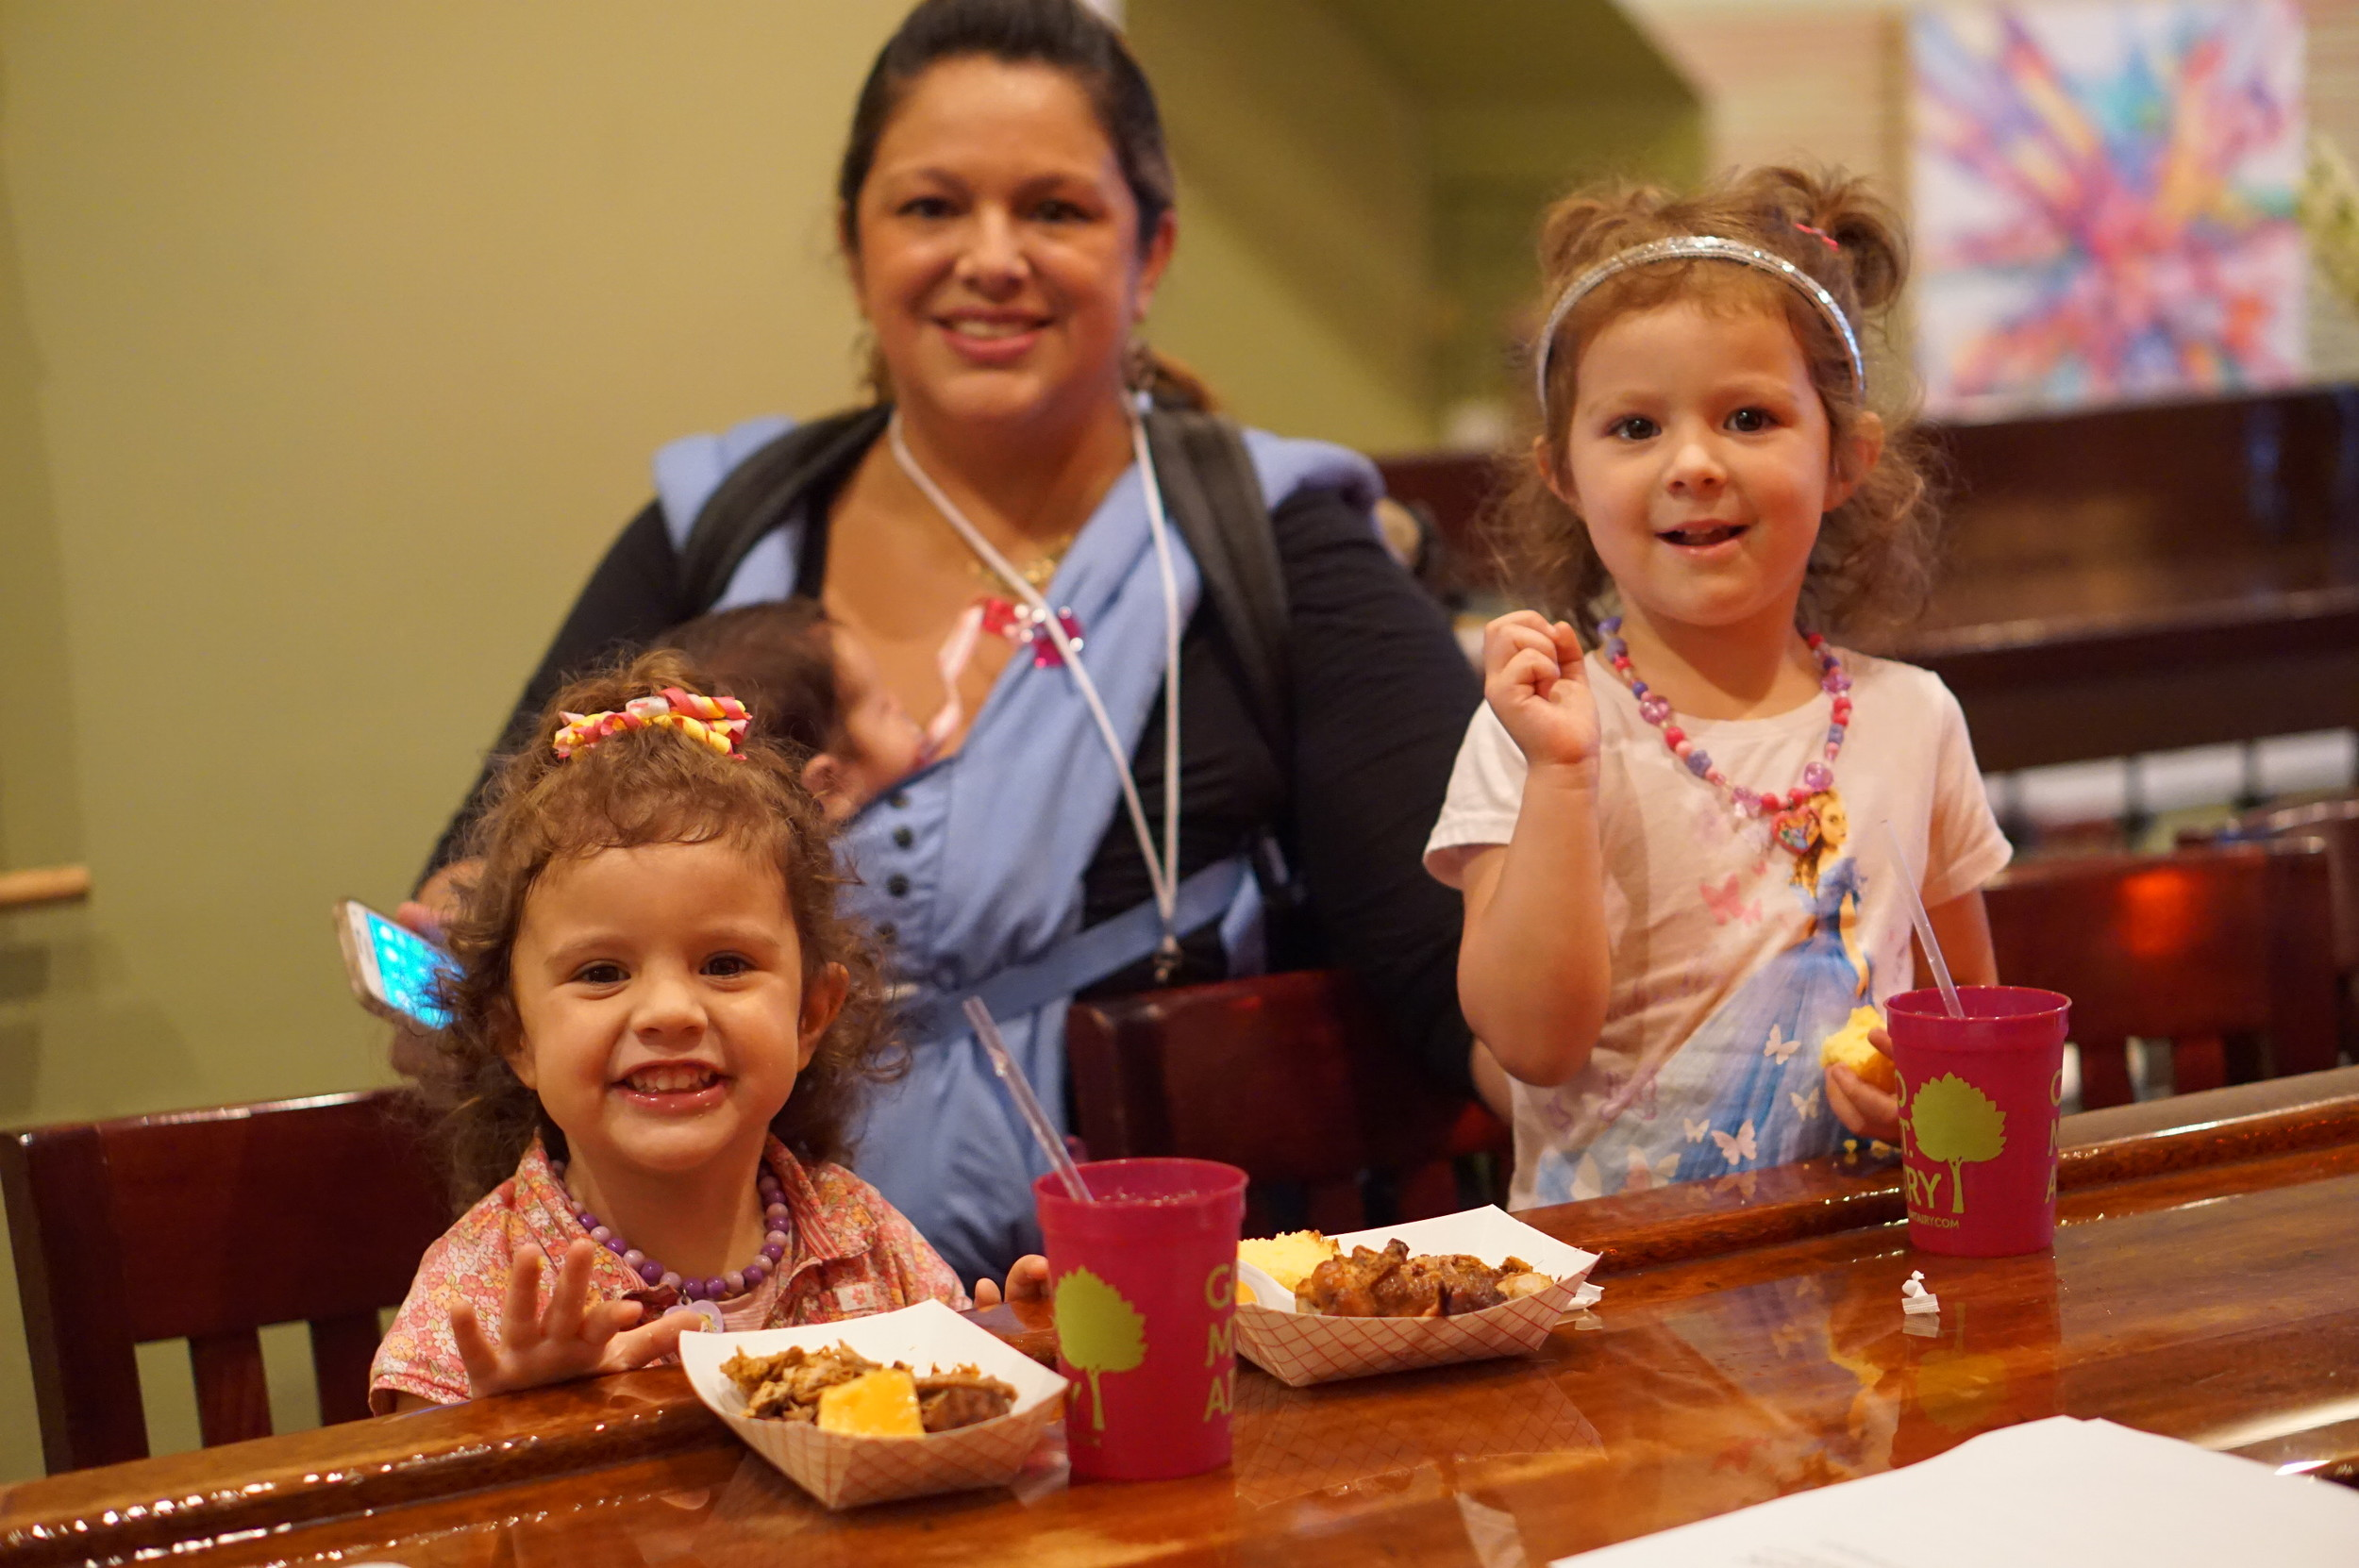 Noelle Kelly and her two little ones enjoy tasty bites on the Street Fare media preview.JPG